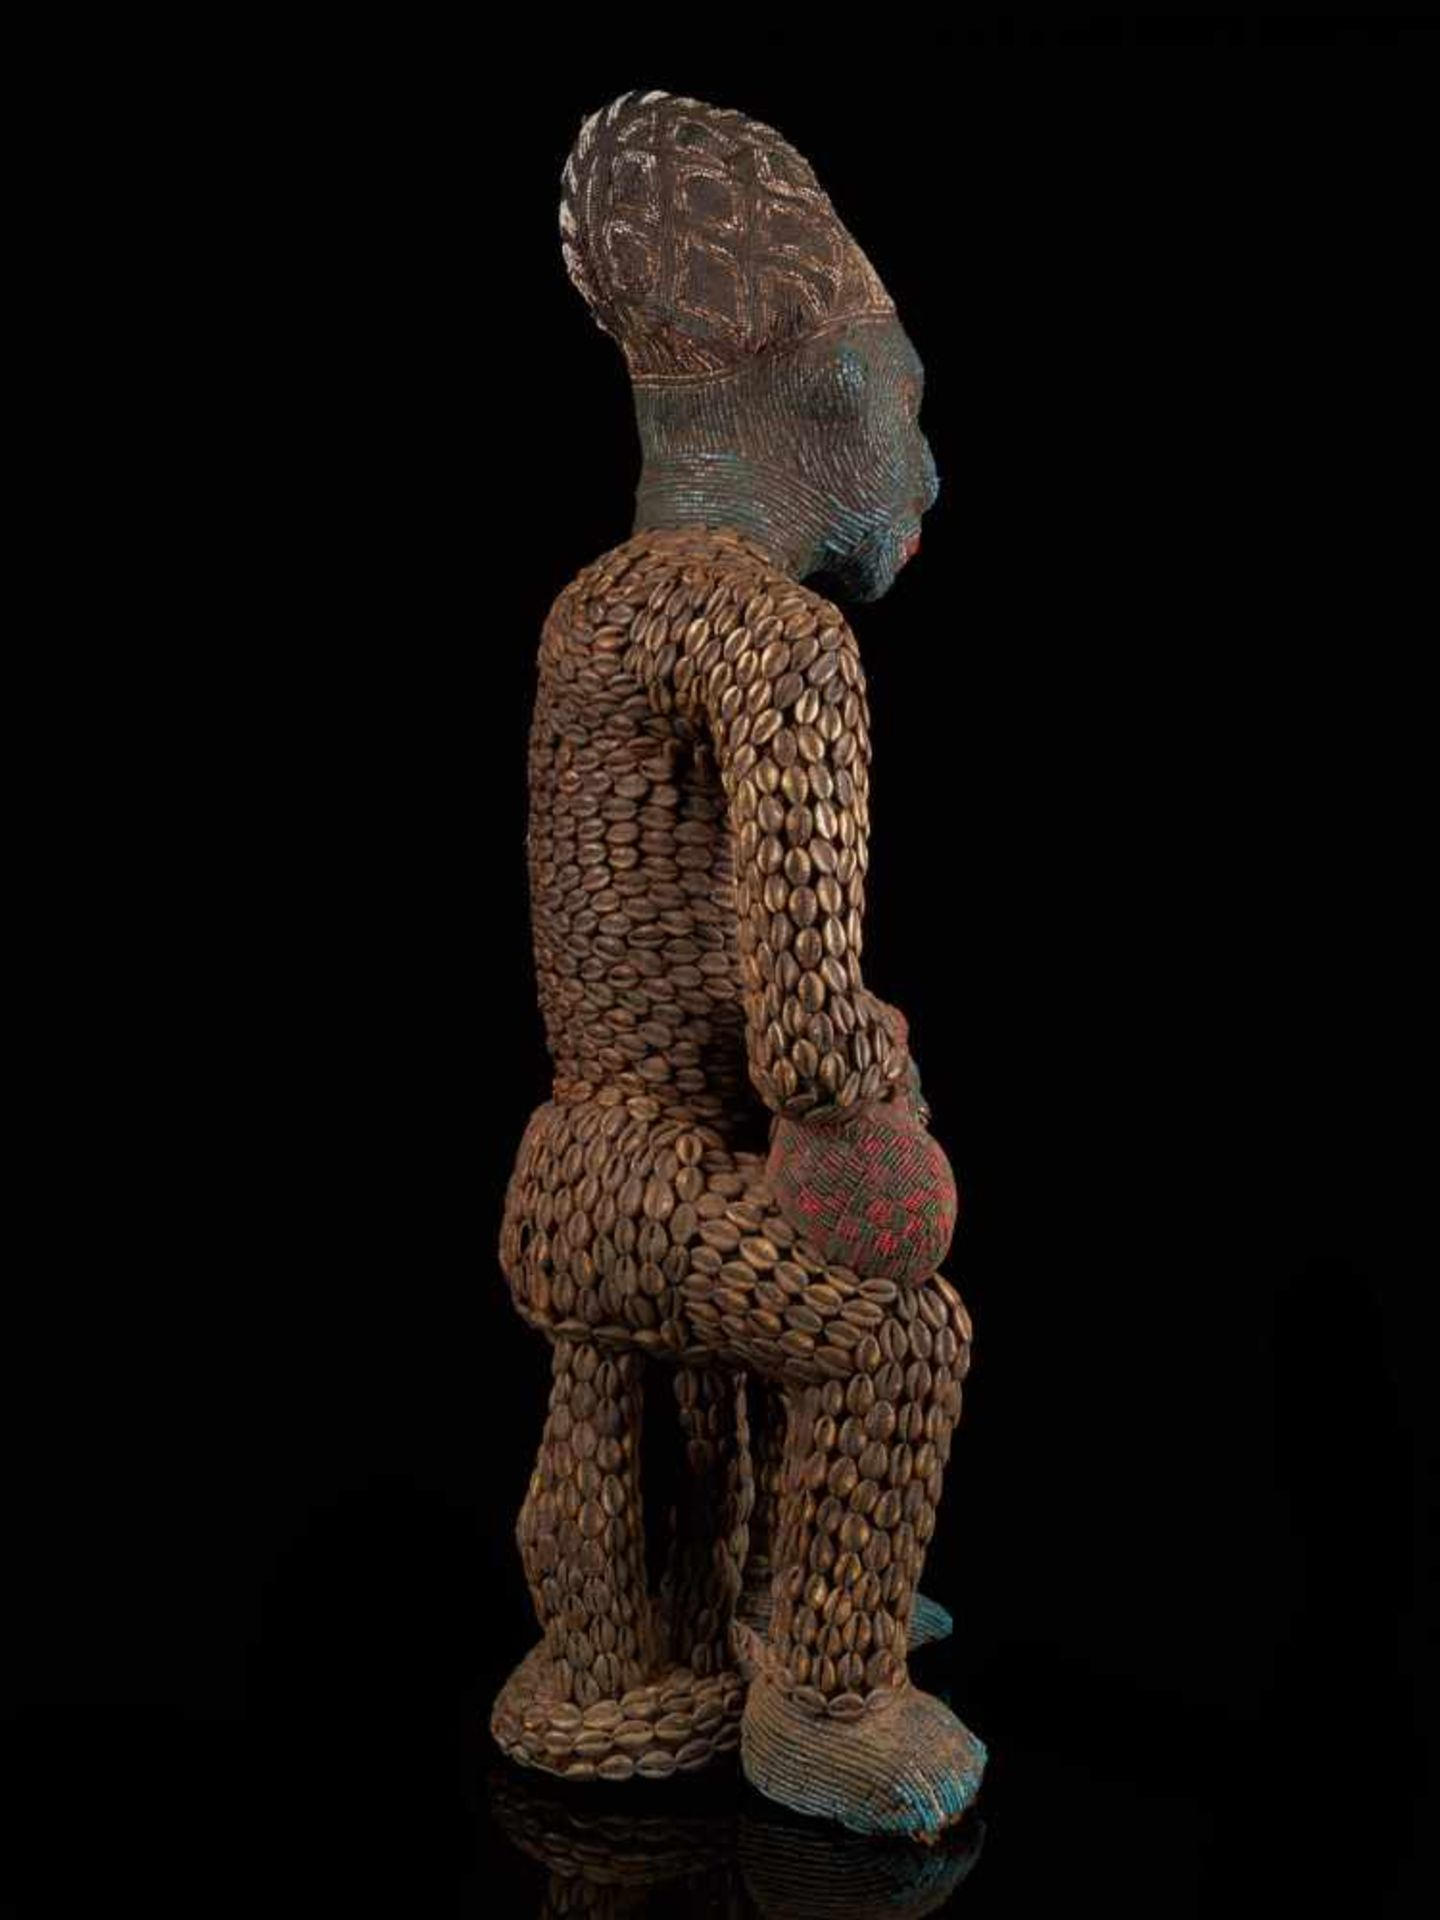 Beaded Royal Figure Holding Wine Vessel - Tribal ArtThis exquisite beaded figure of a man holding - Bild 4 aus 8